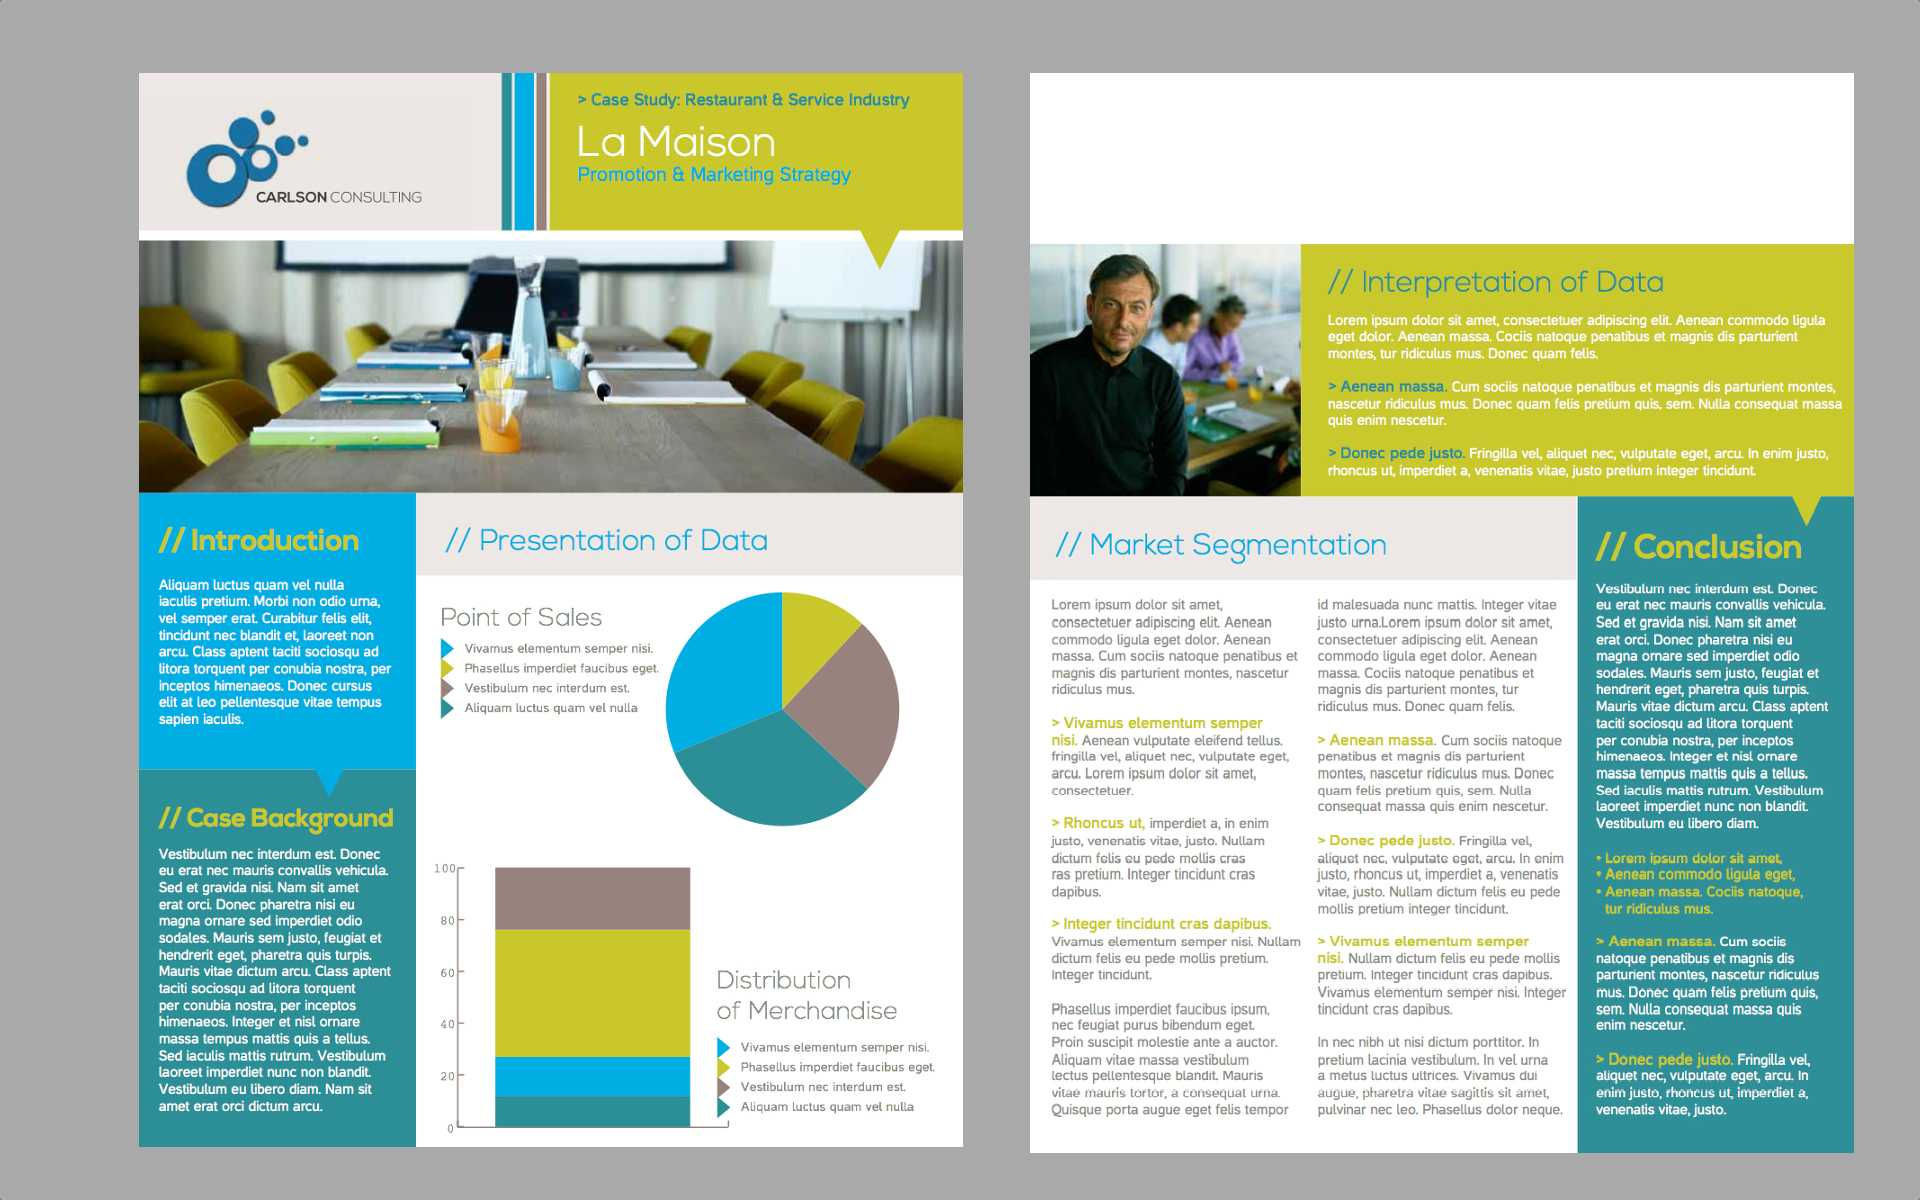 18 1 Page Brochure Templates Images - One Page Brochure With Regard To One Page Brochure Template